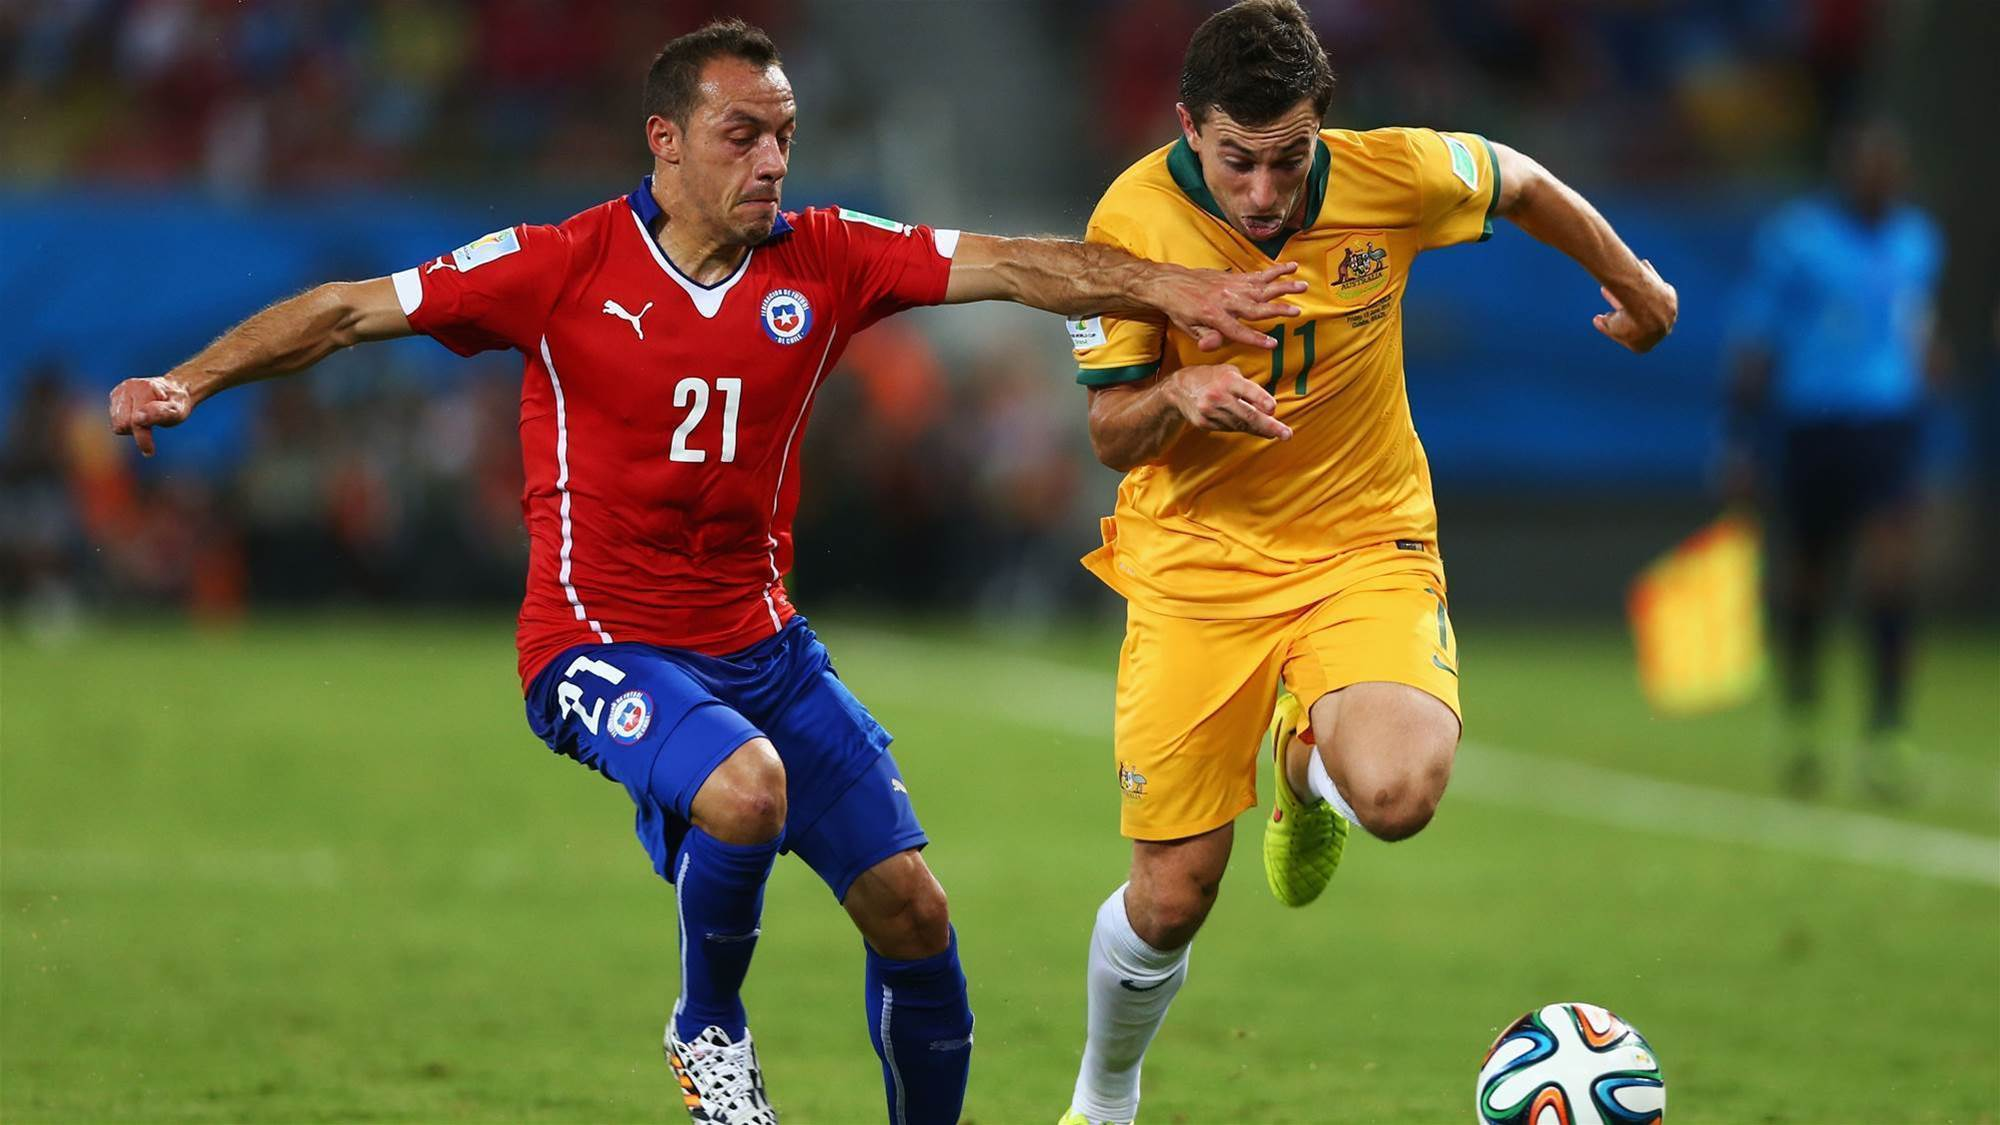 Oar eyes Socceroos World Cup spot